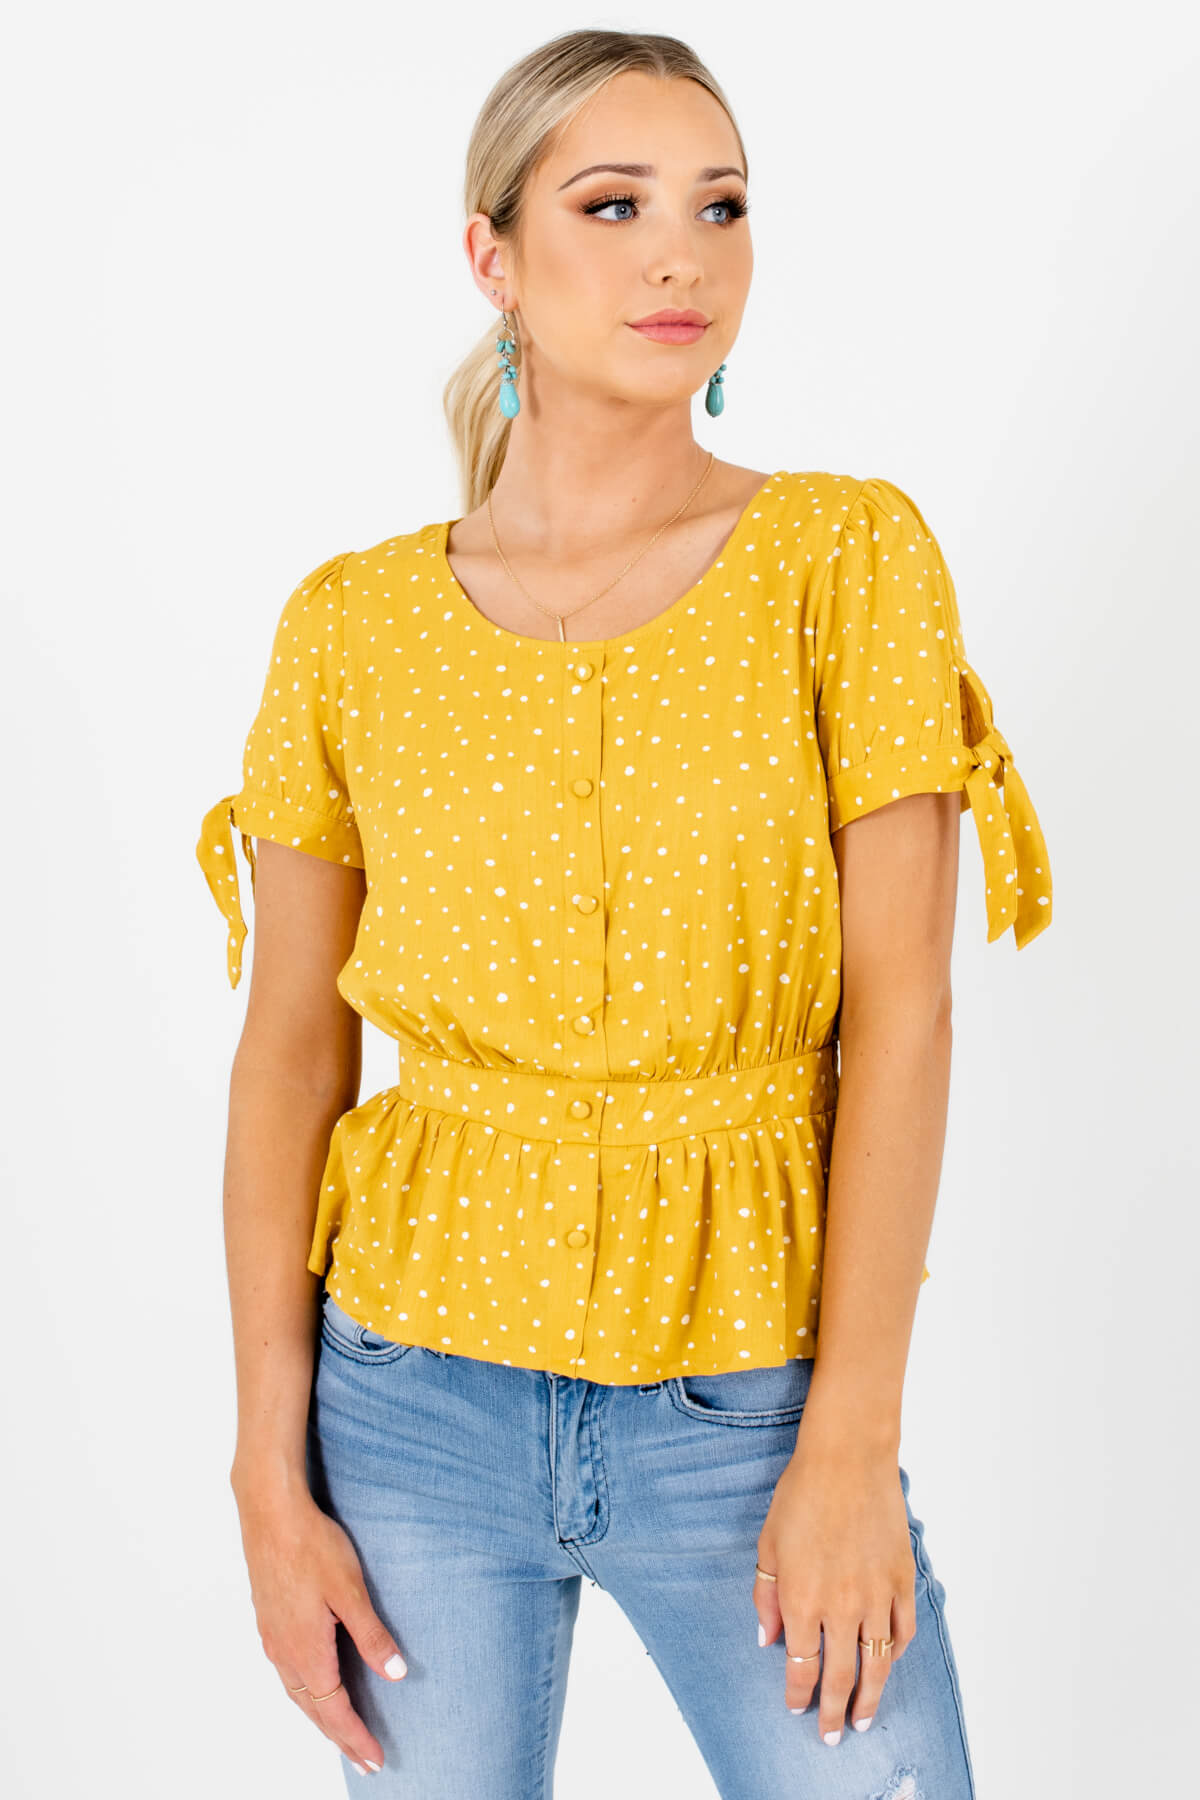 Mustard Yellow and White Polka Dot Patterned Boutique Tops for Women